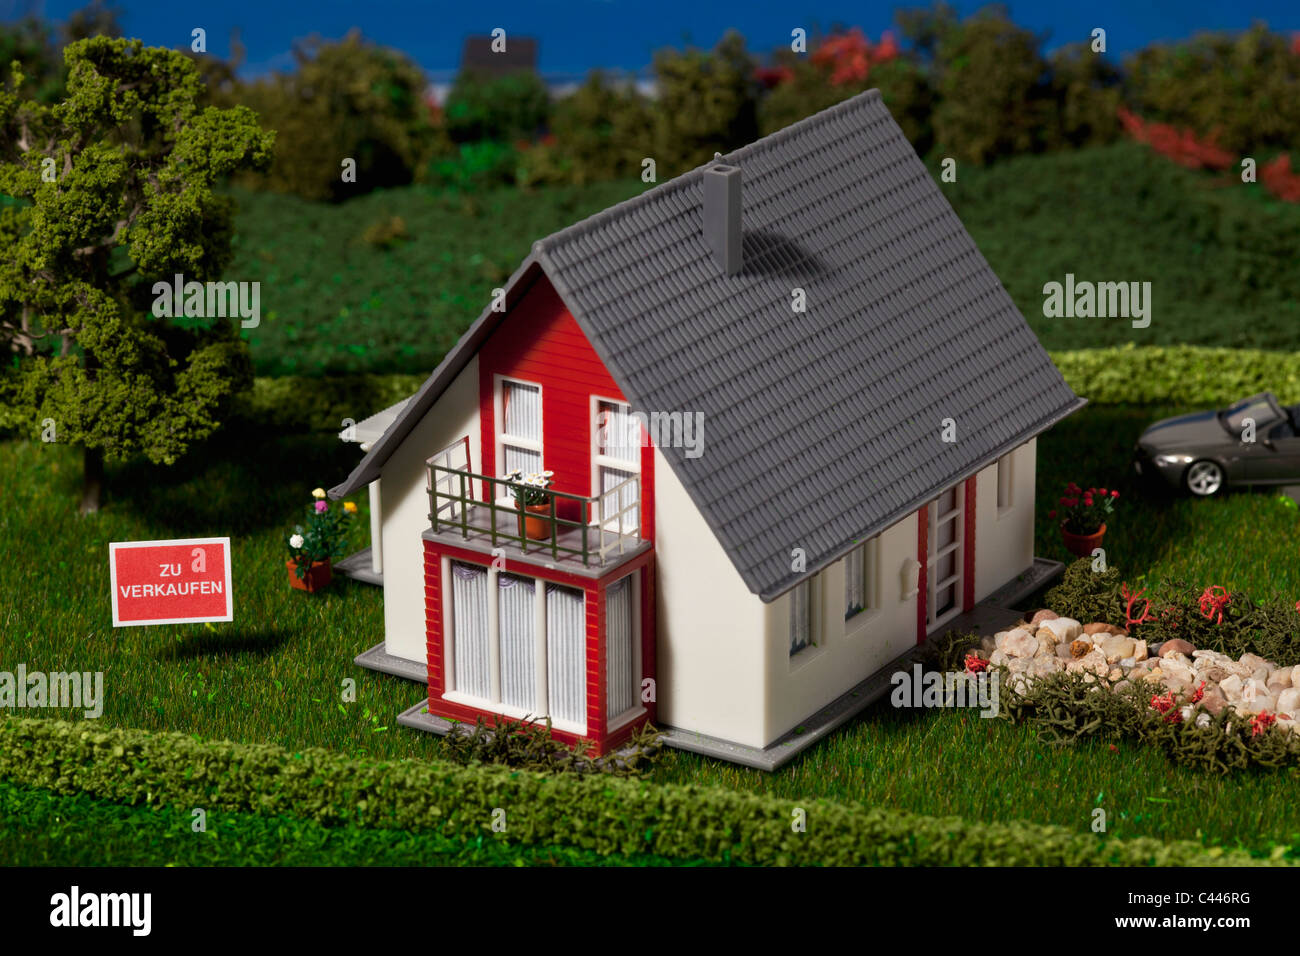 A diorama of a miniature house with a  ZU VERKAUFEN (for sale in German) sign - Stock Image